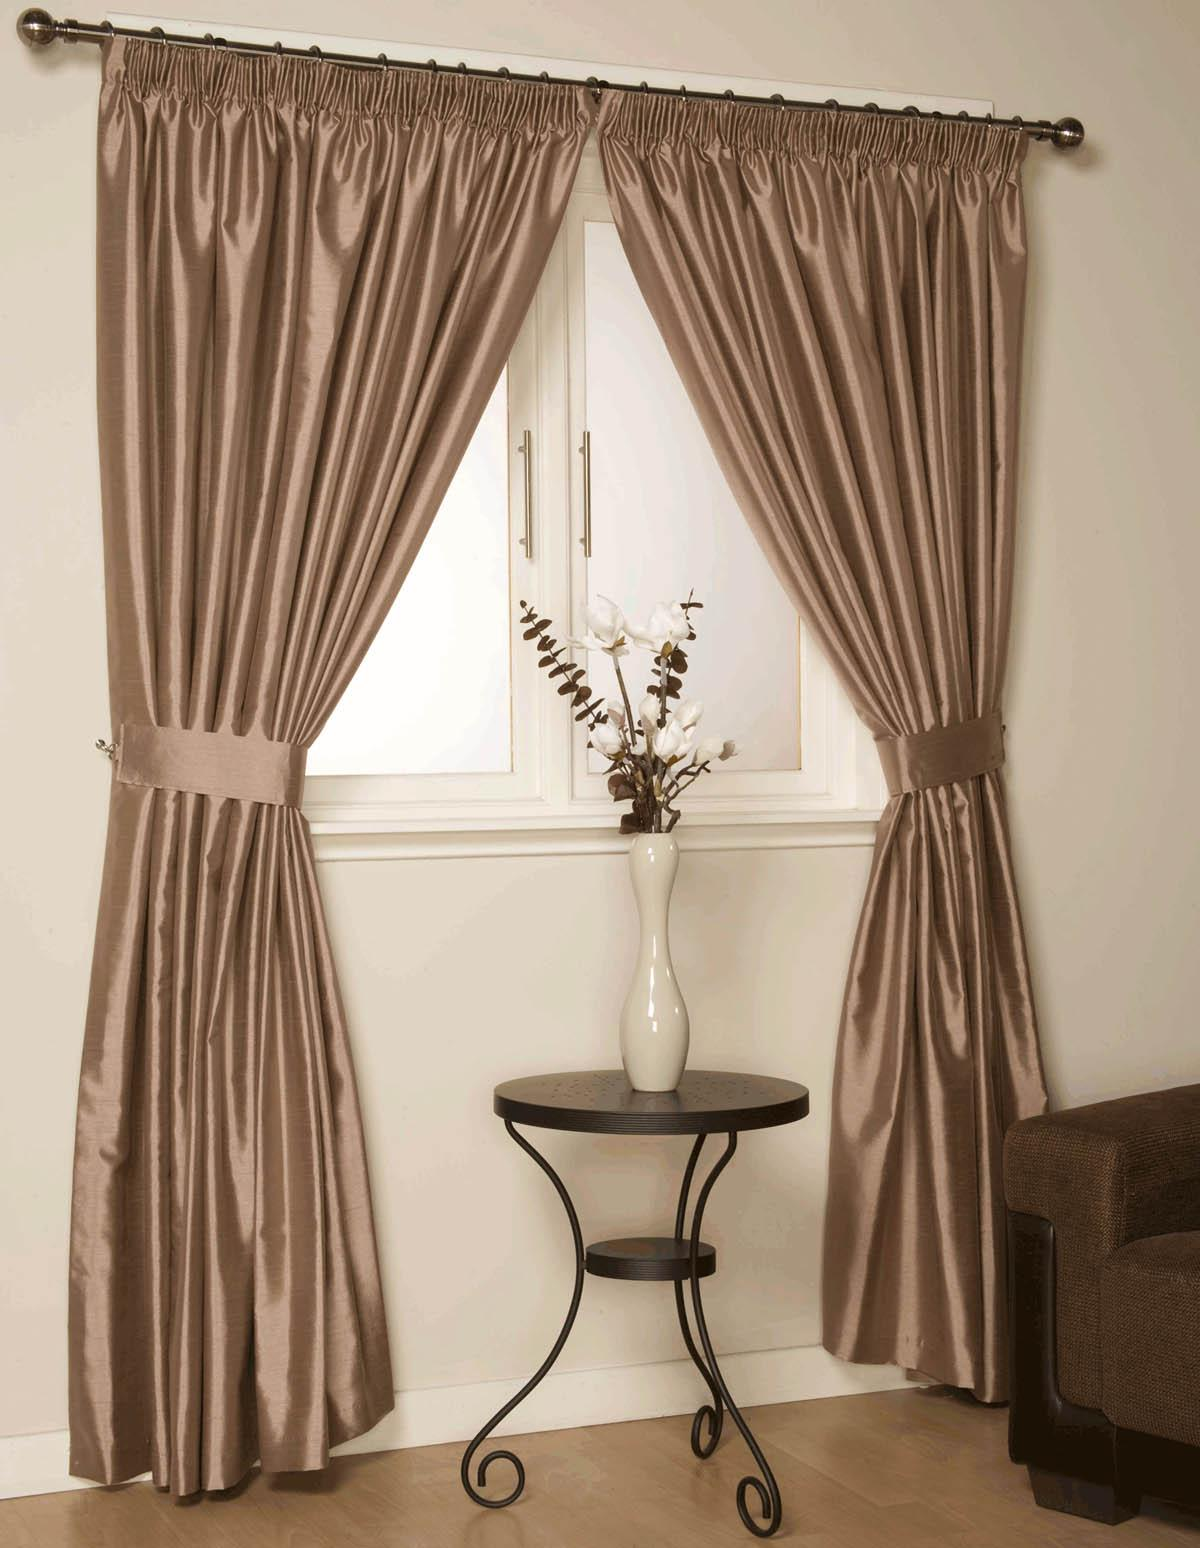 Beef Curtains Urban Dictionary Beefcurtains Beff Behind Closed Curtain